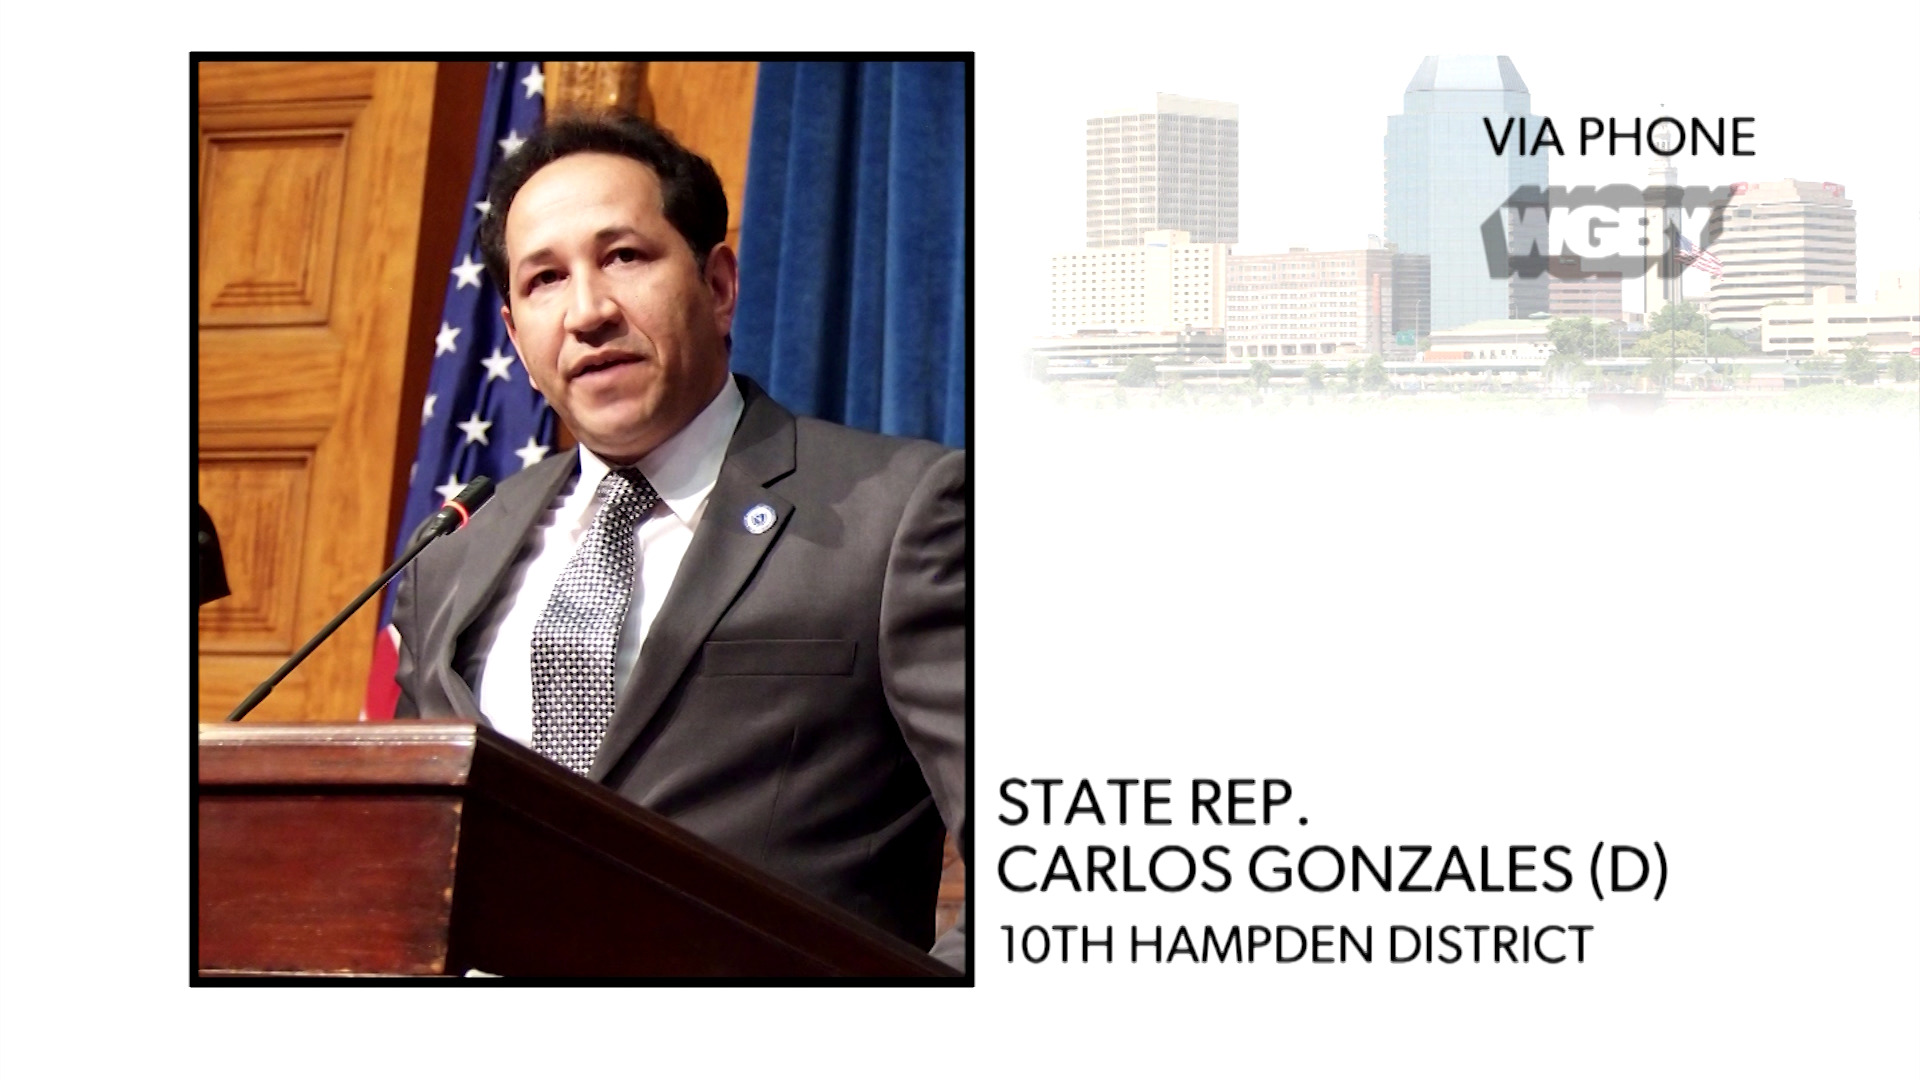 WATCH: State Rep. Carlos Gonzalez discusses why minority communities are among the hardest hit by COVID-19 and what can be done to help protect them.